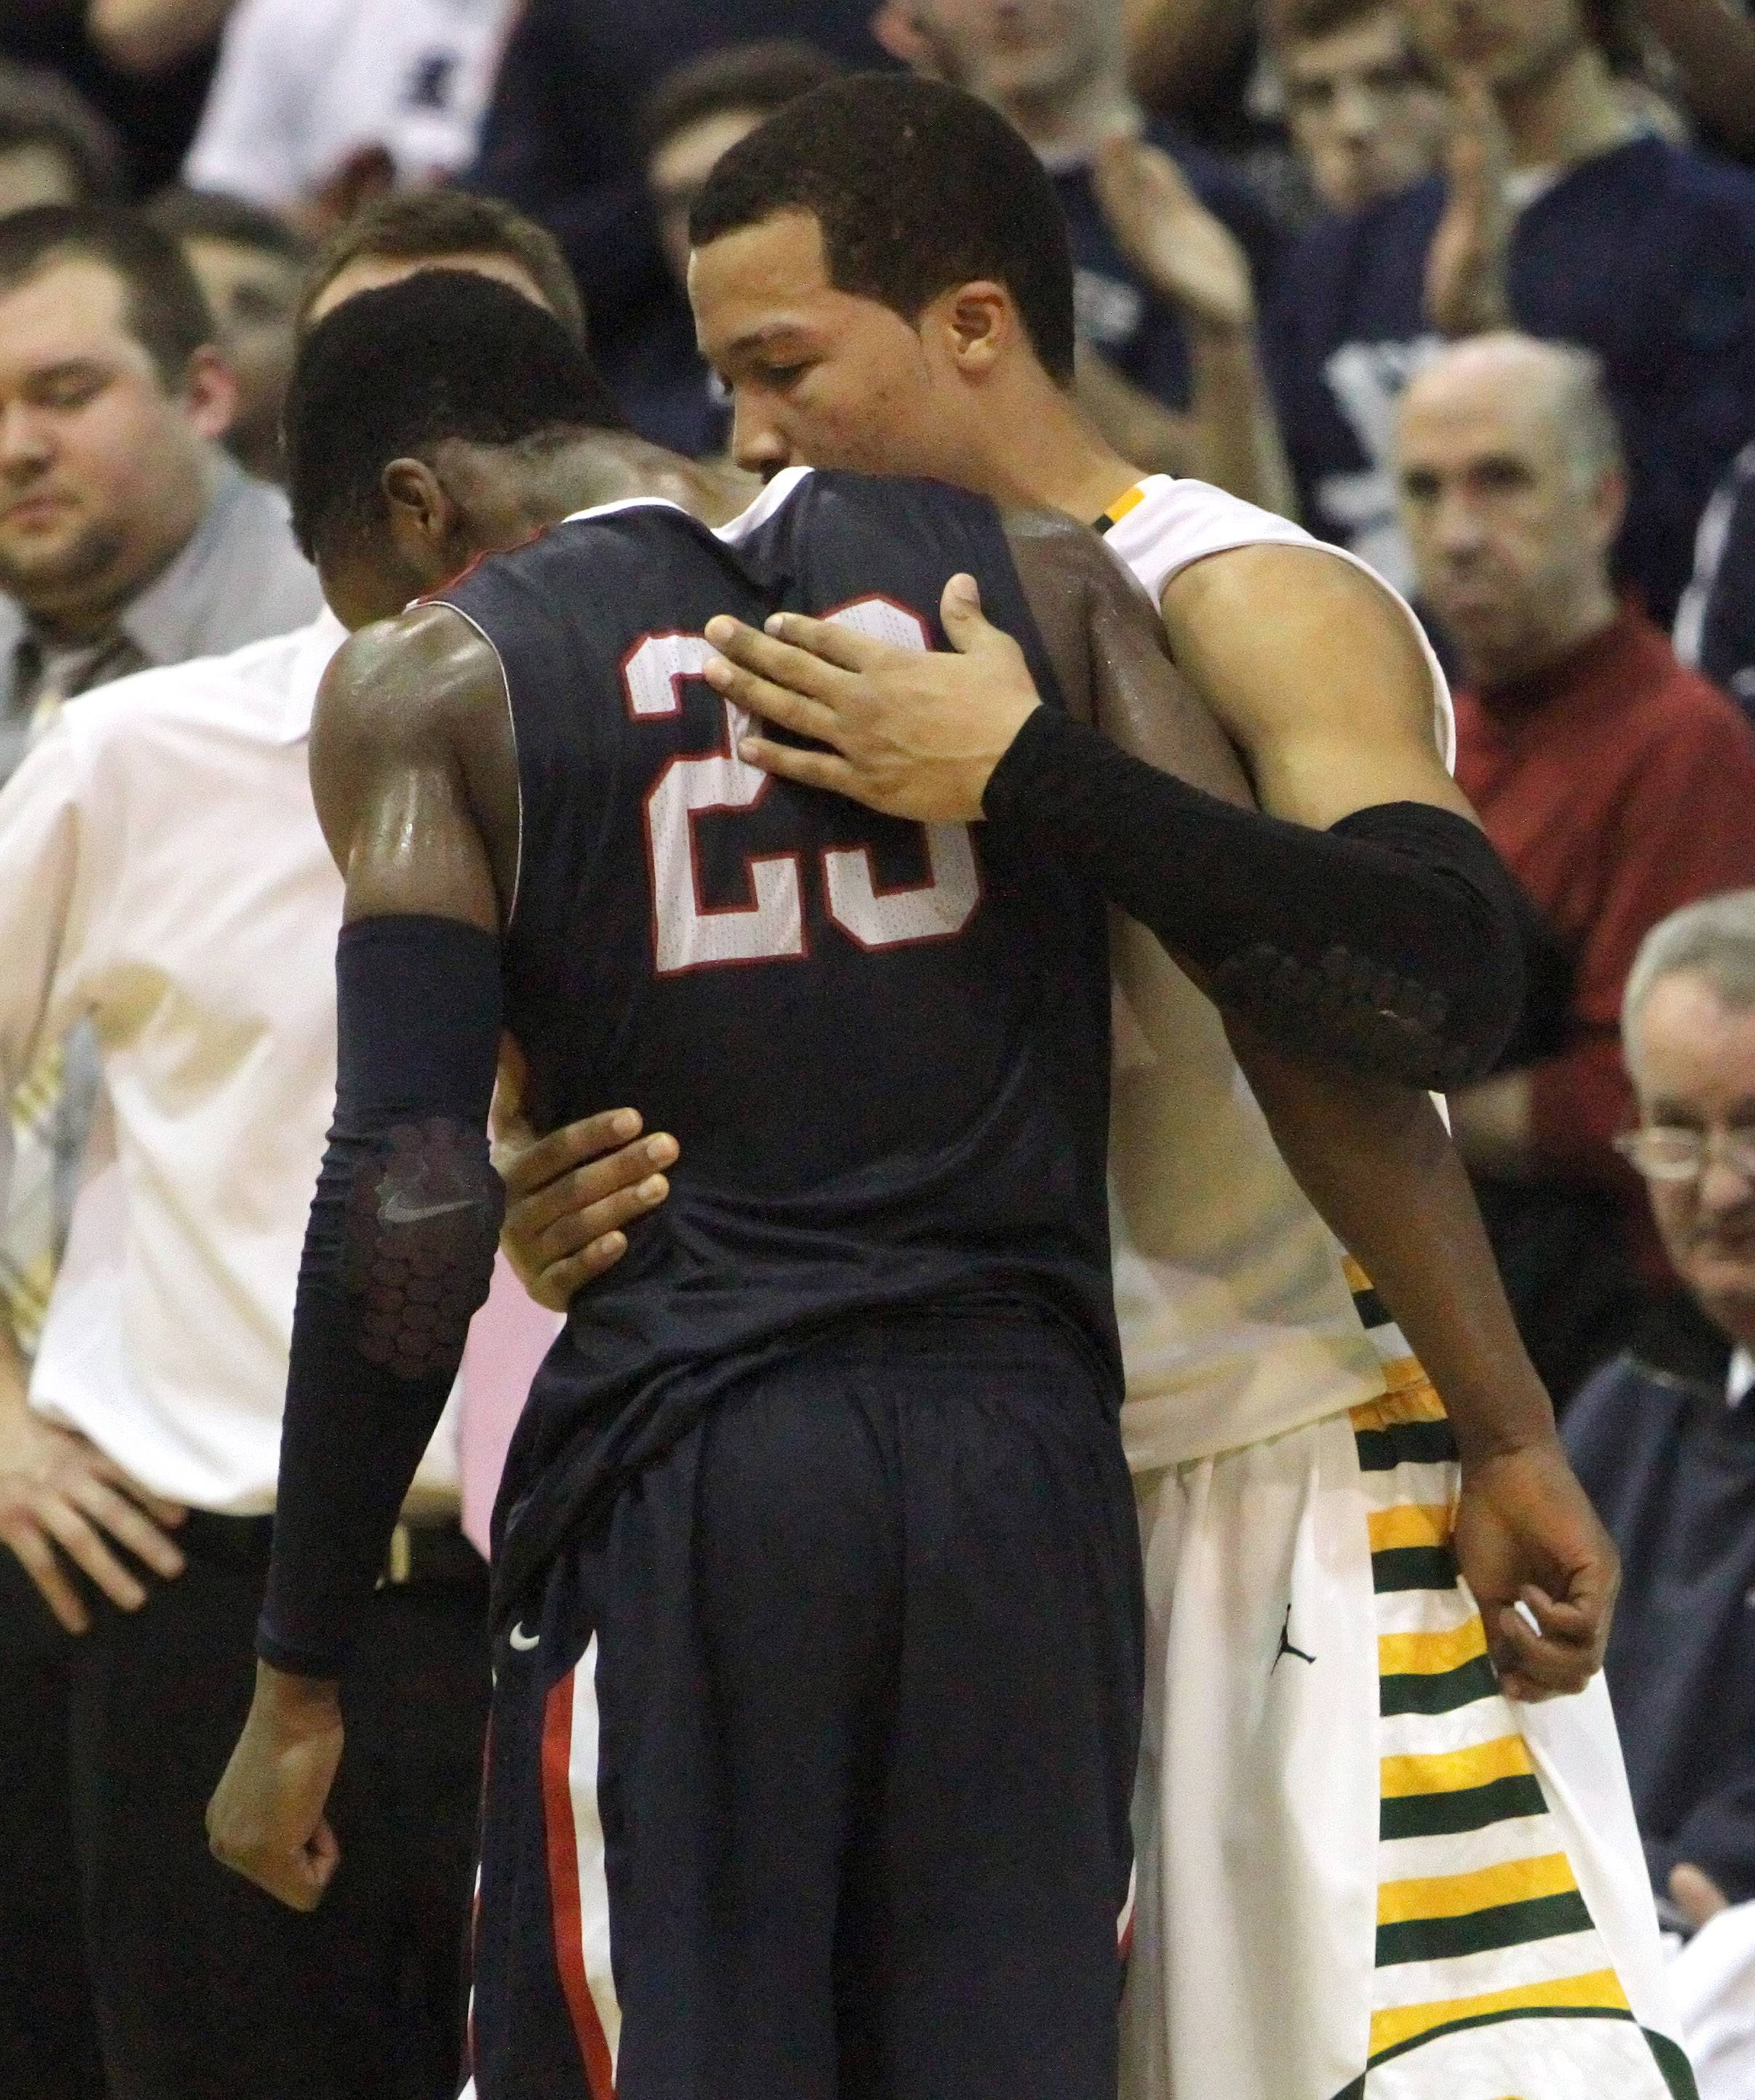 Stevenson's Jalen Brunson, right, hugs St. Viator's Ore Arogundade at the end of the game.